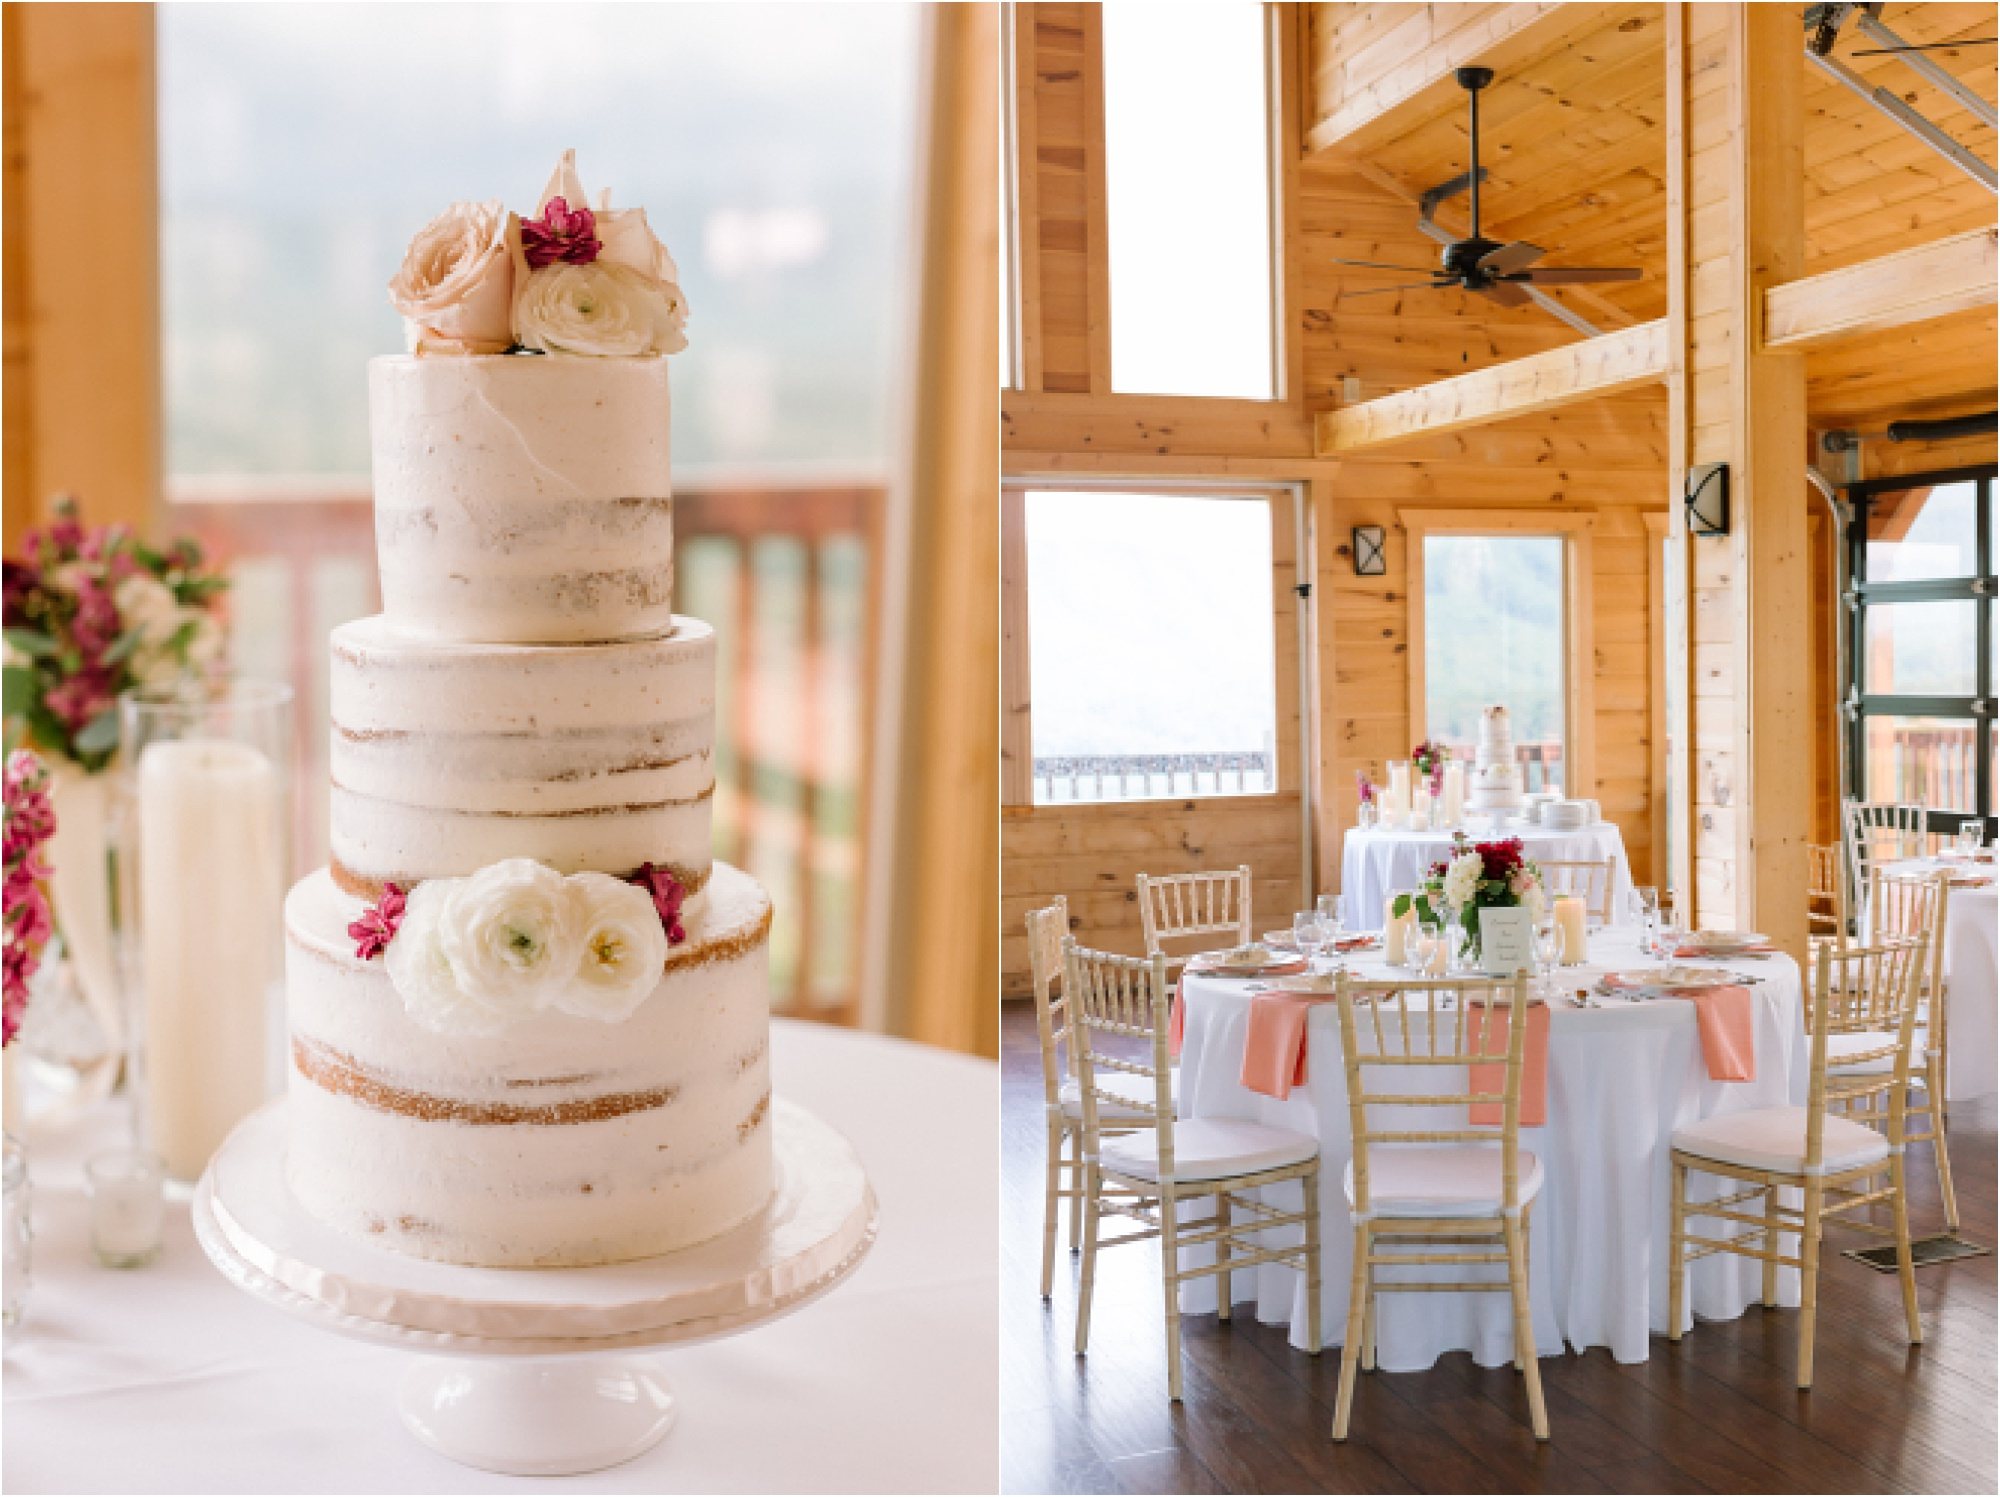 cake and reception details at mountaintop wedding